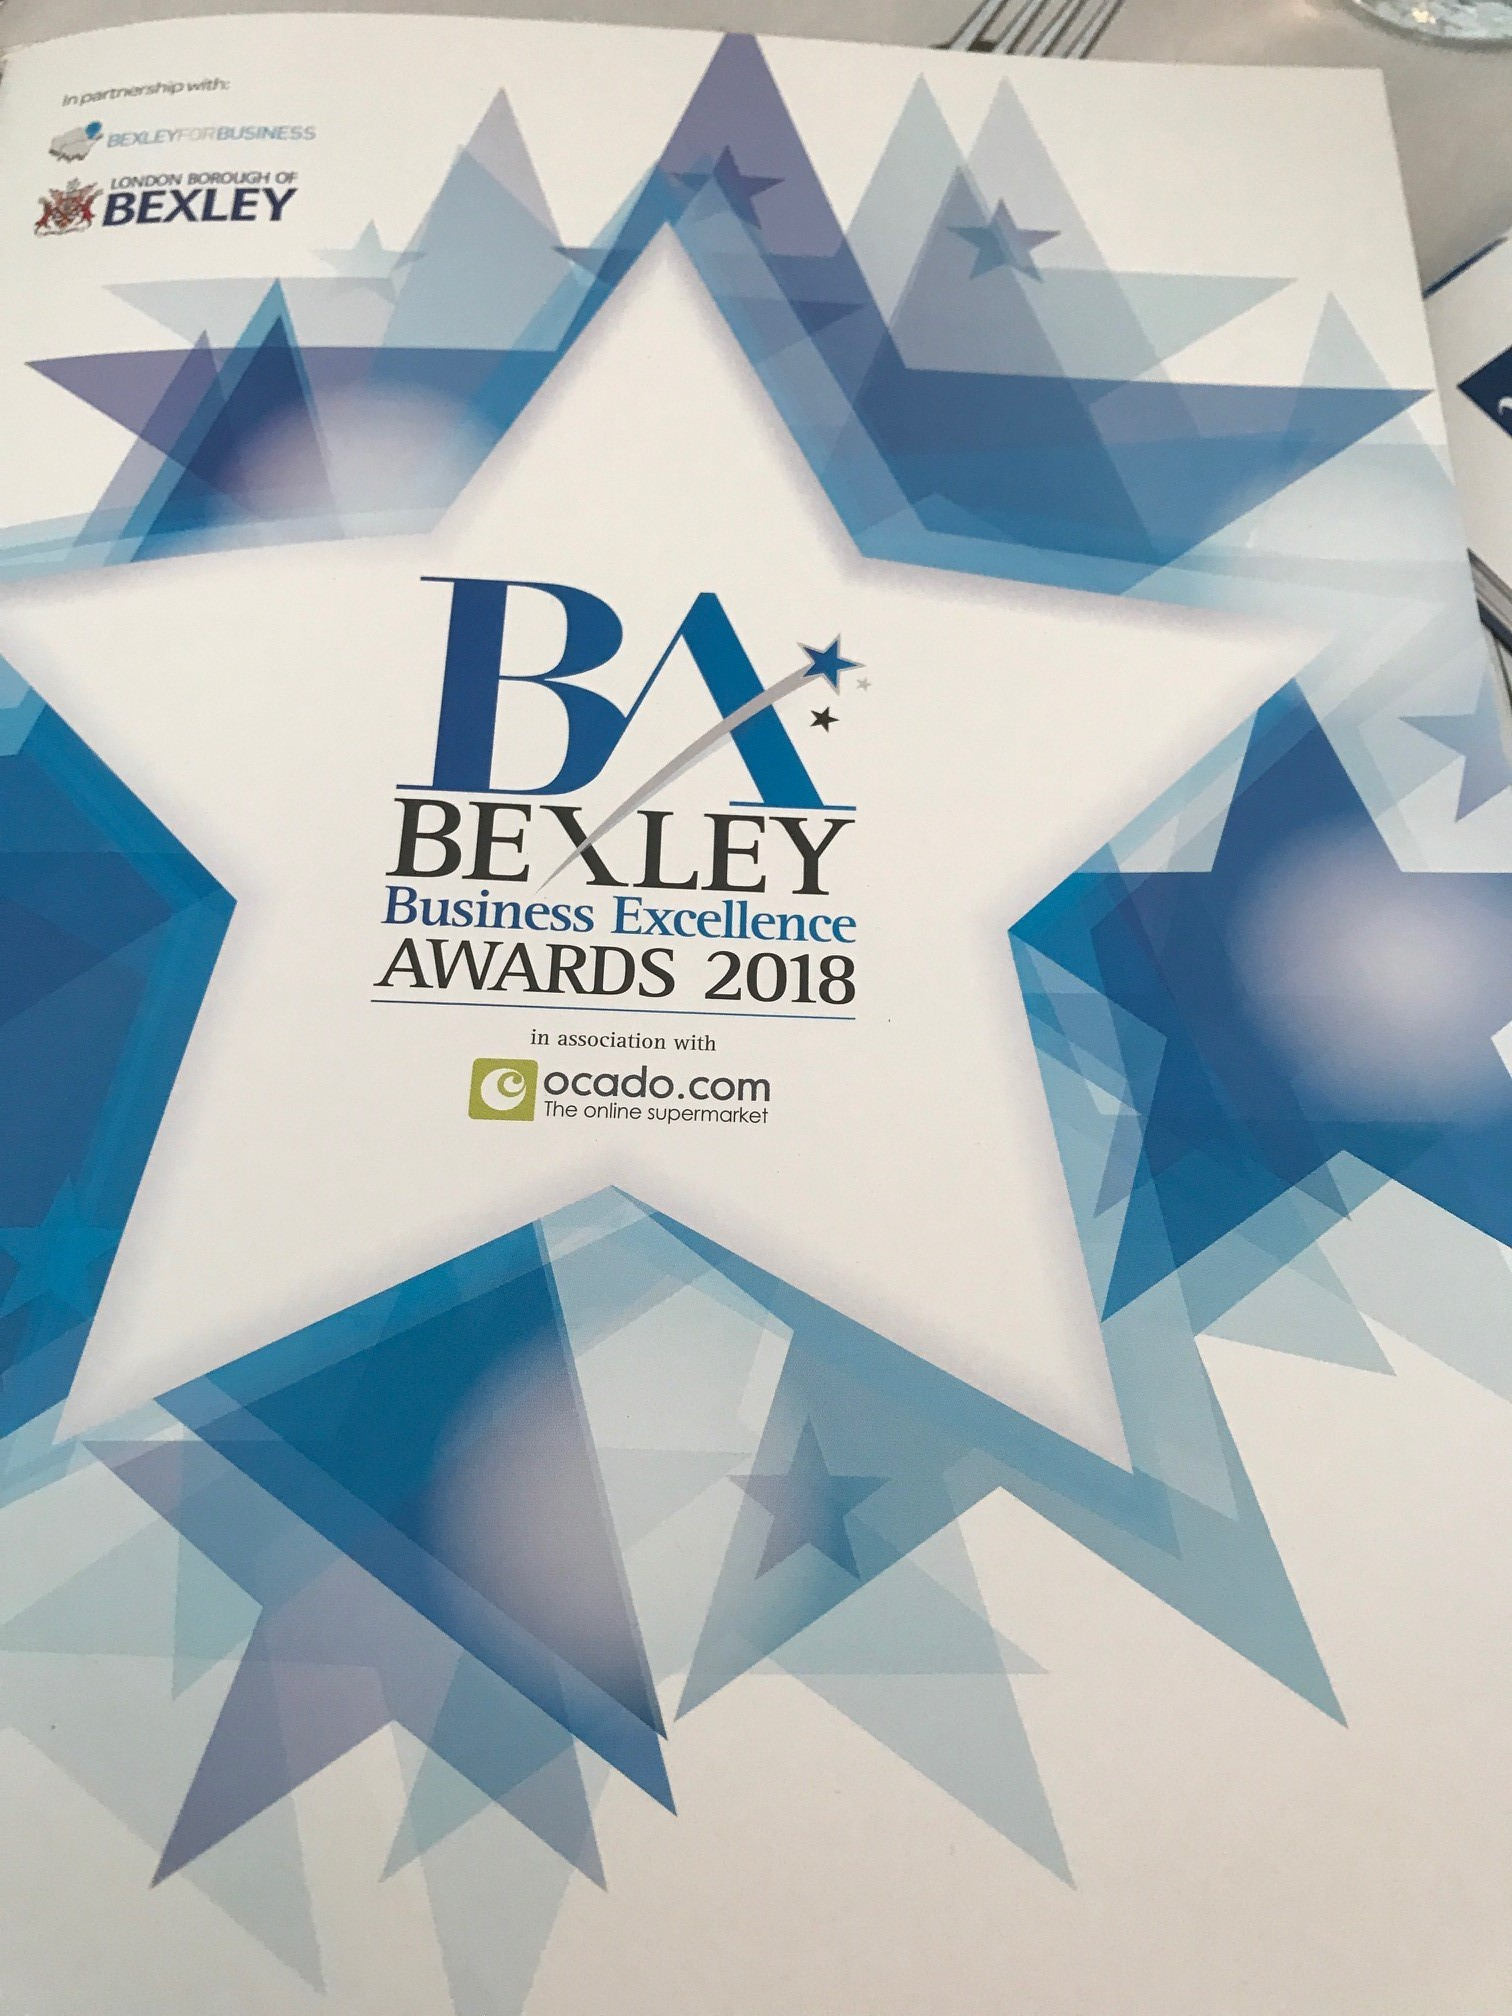 McBrides highly commended in the Bexley Business Awards image